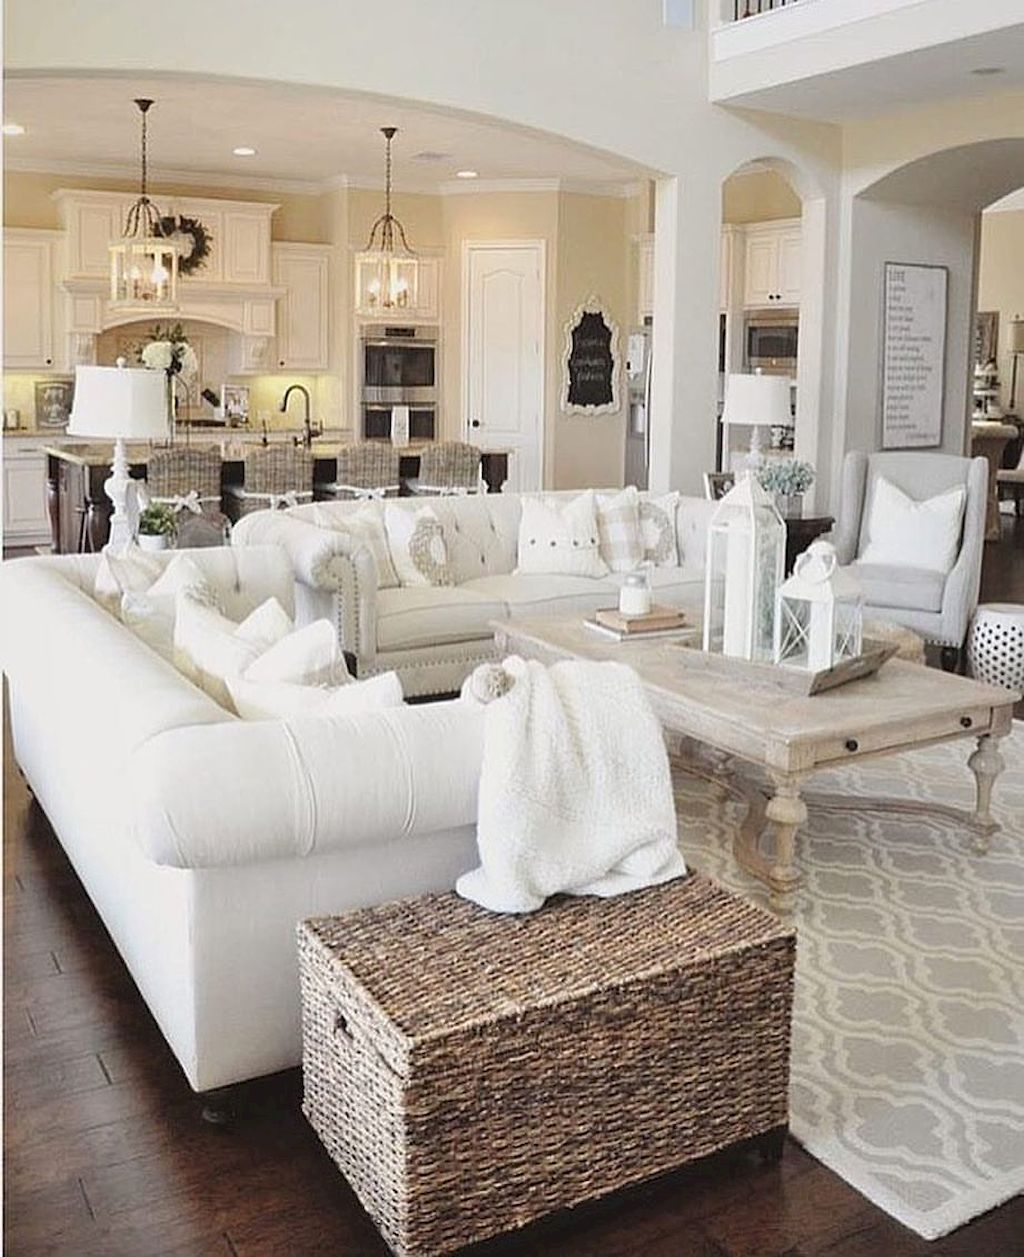 Luxury Living Room Livingroom Luxury Living Room Interior Design Ideas Coastal Decorating Living Room Farm House Living Room Luxury Living Room #small #coastal #living #room